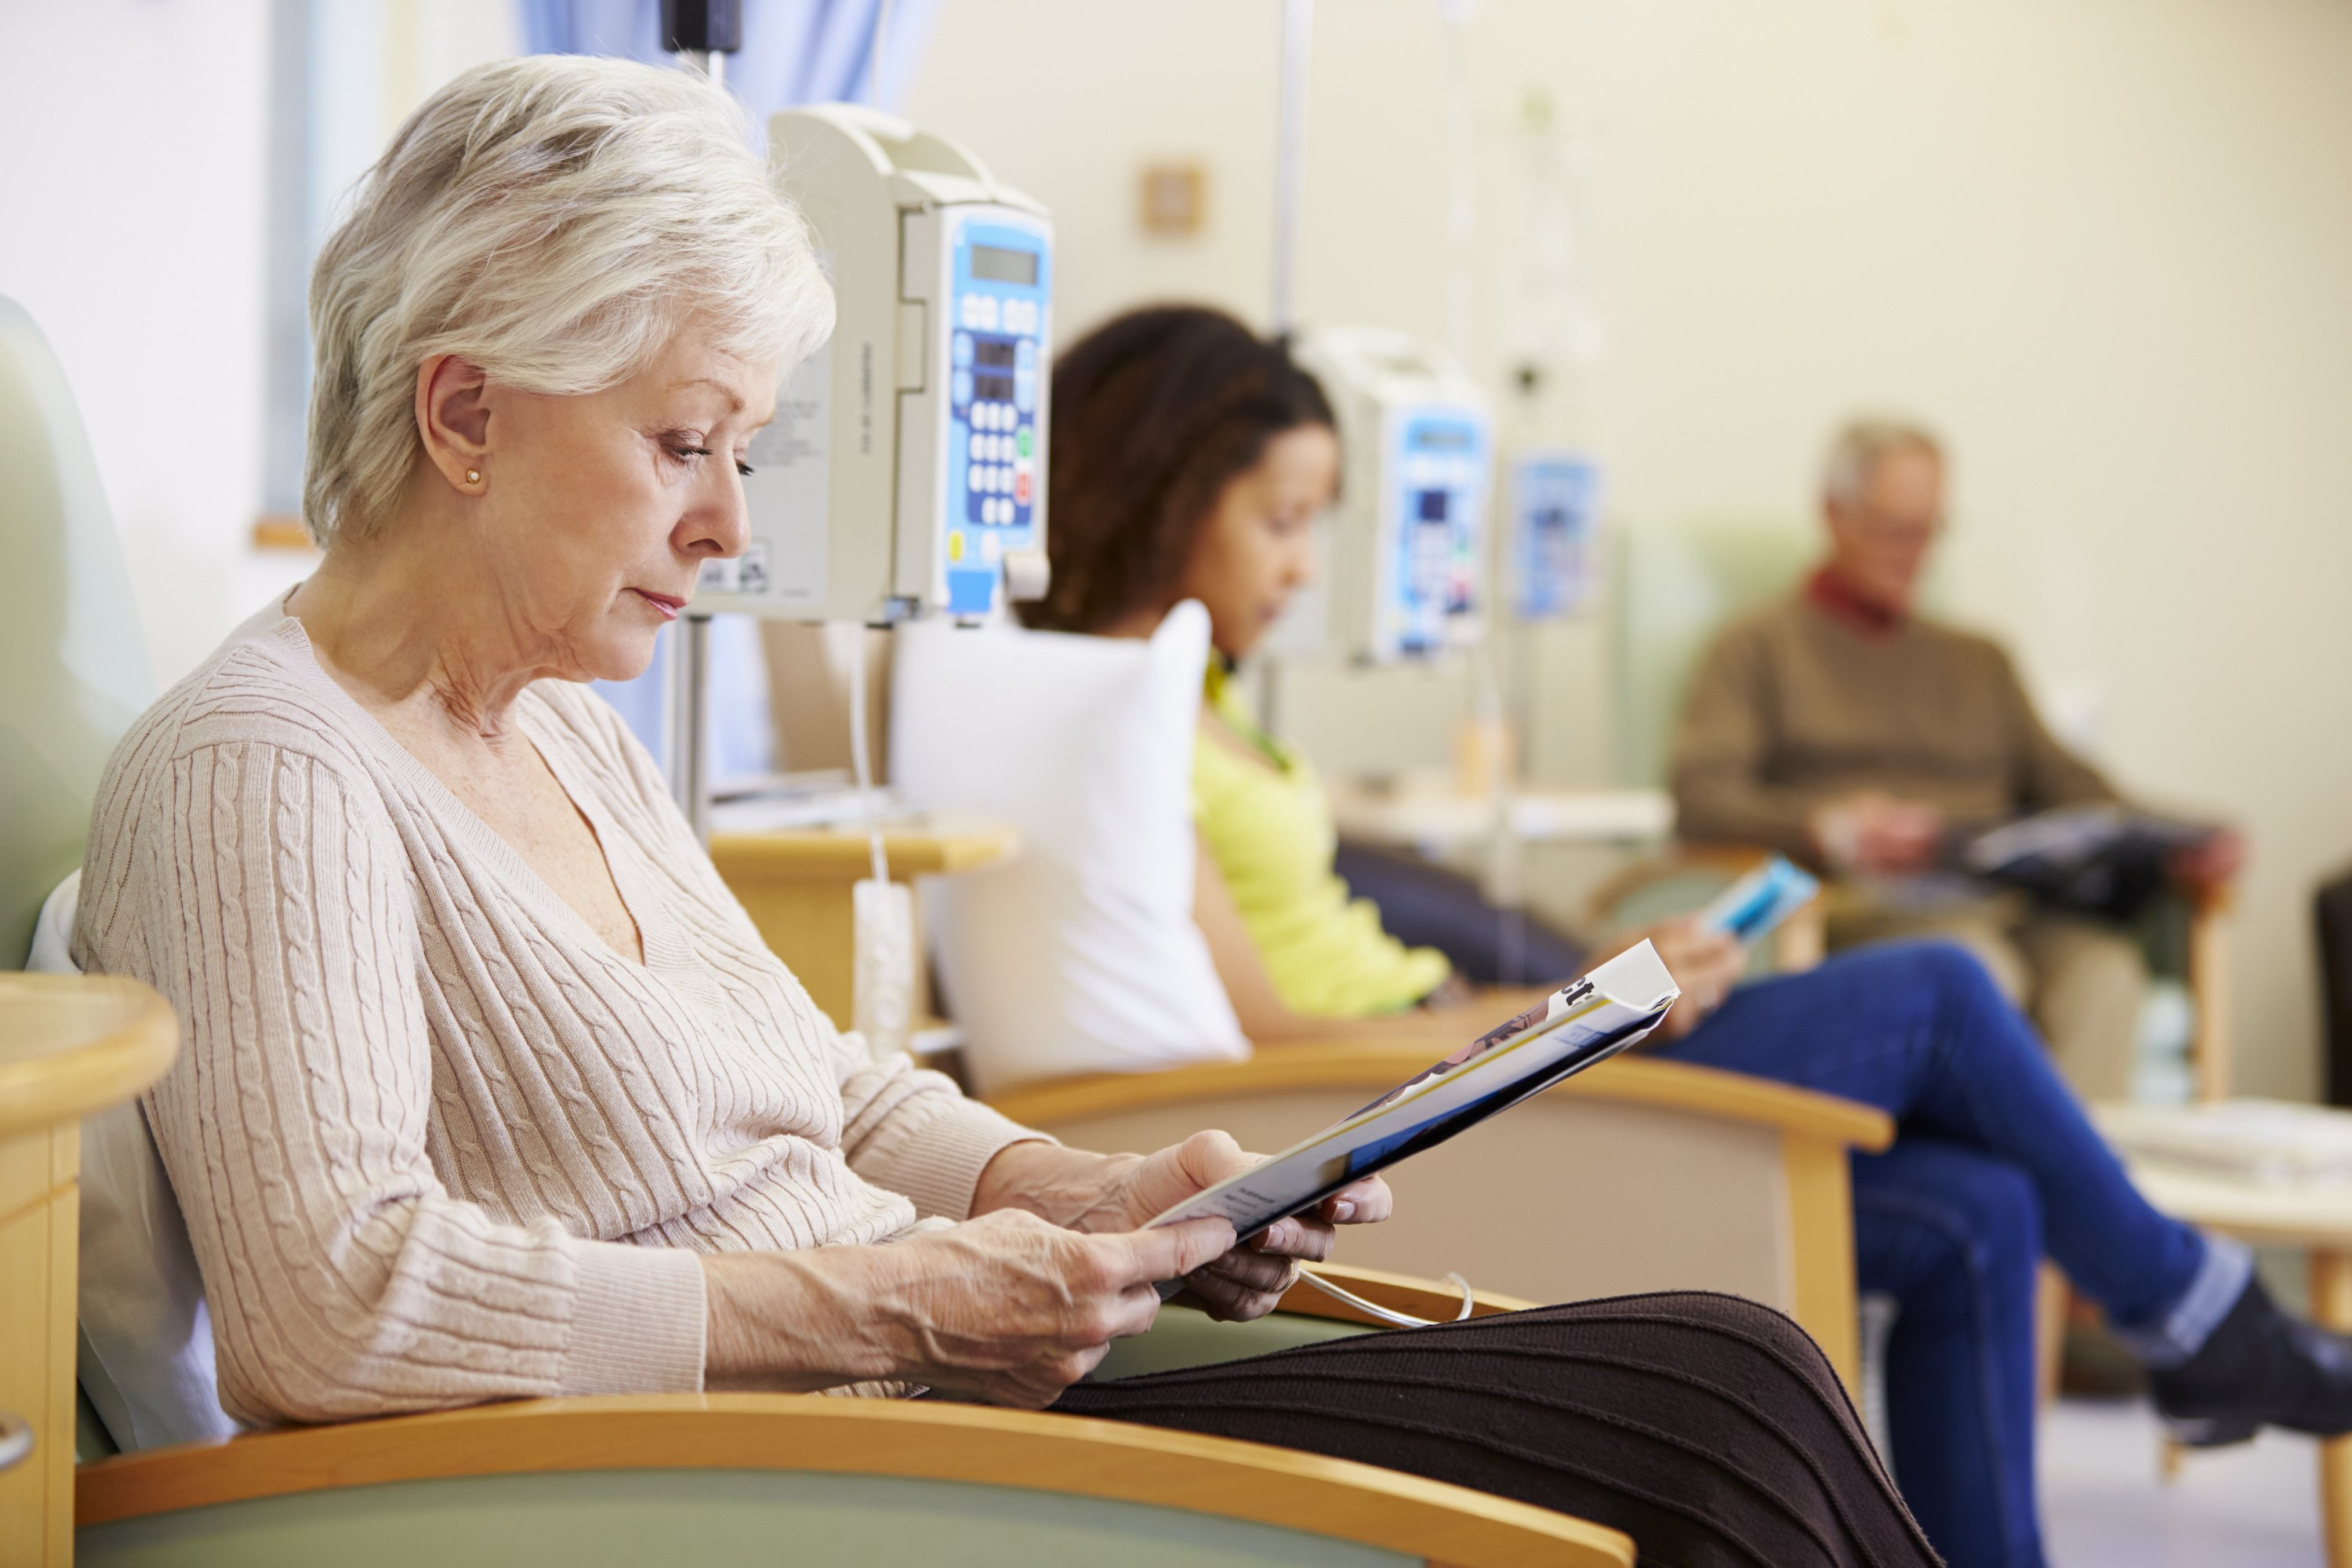 Preparing for chemotherapy treatments